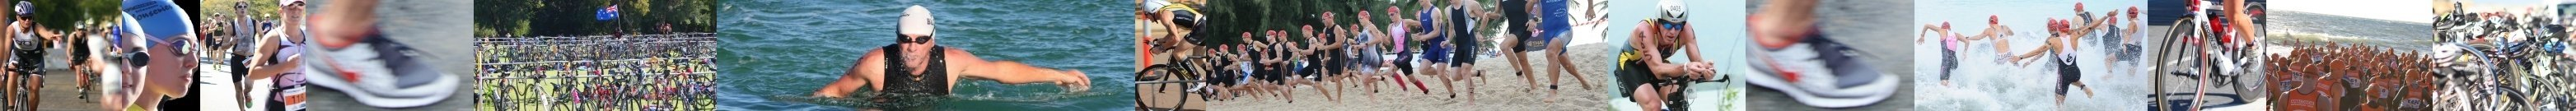 Images from TriathlonOz